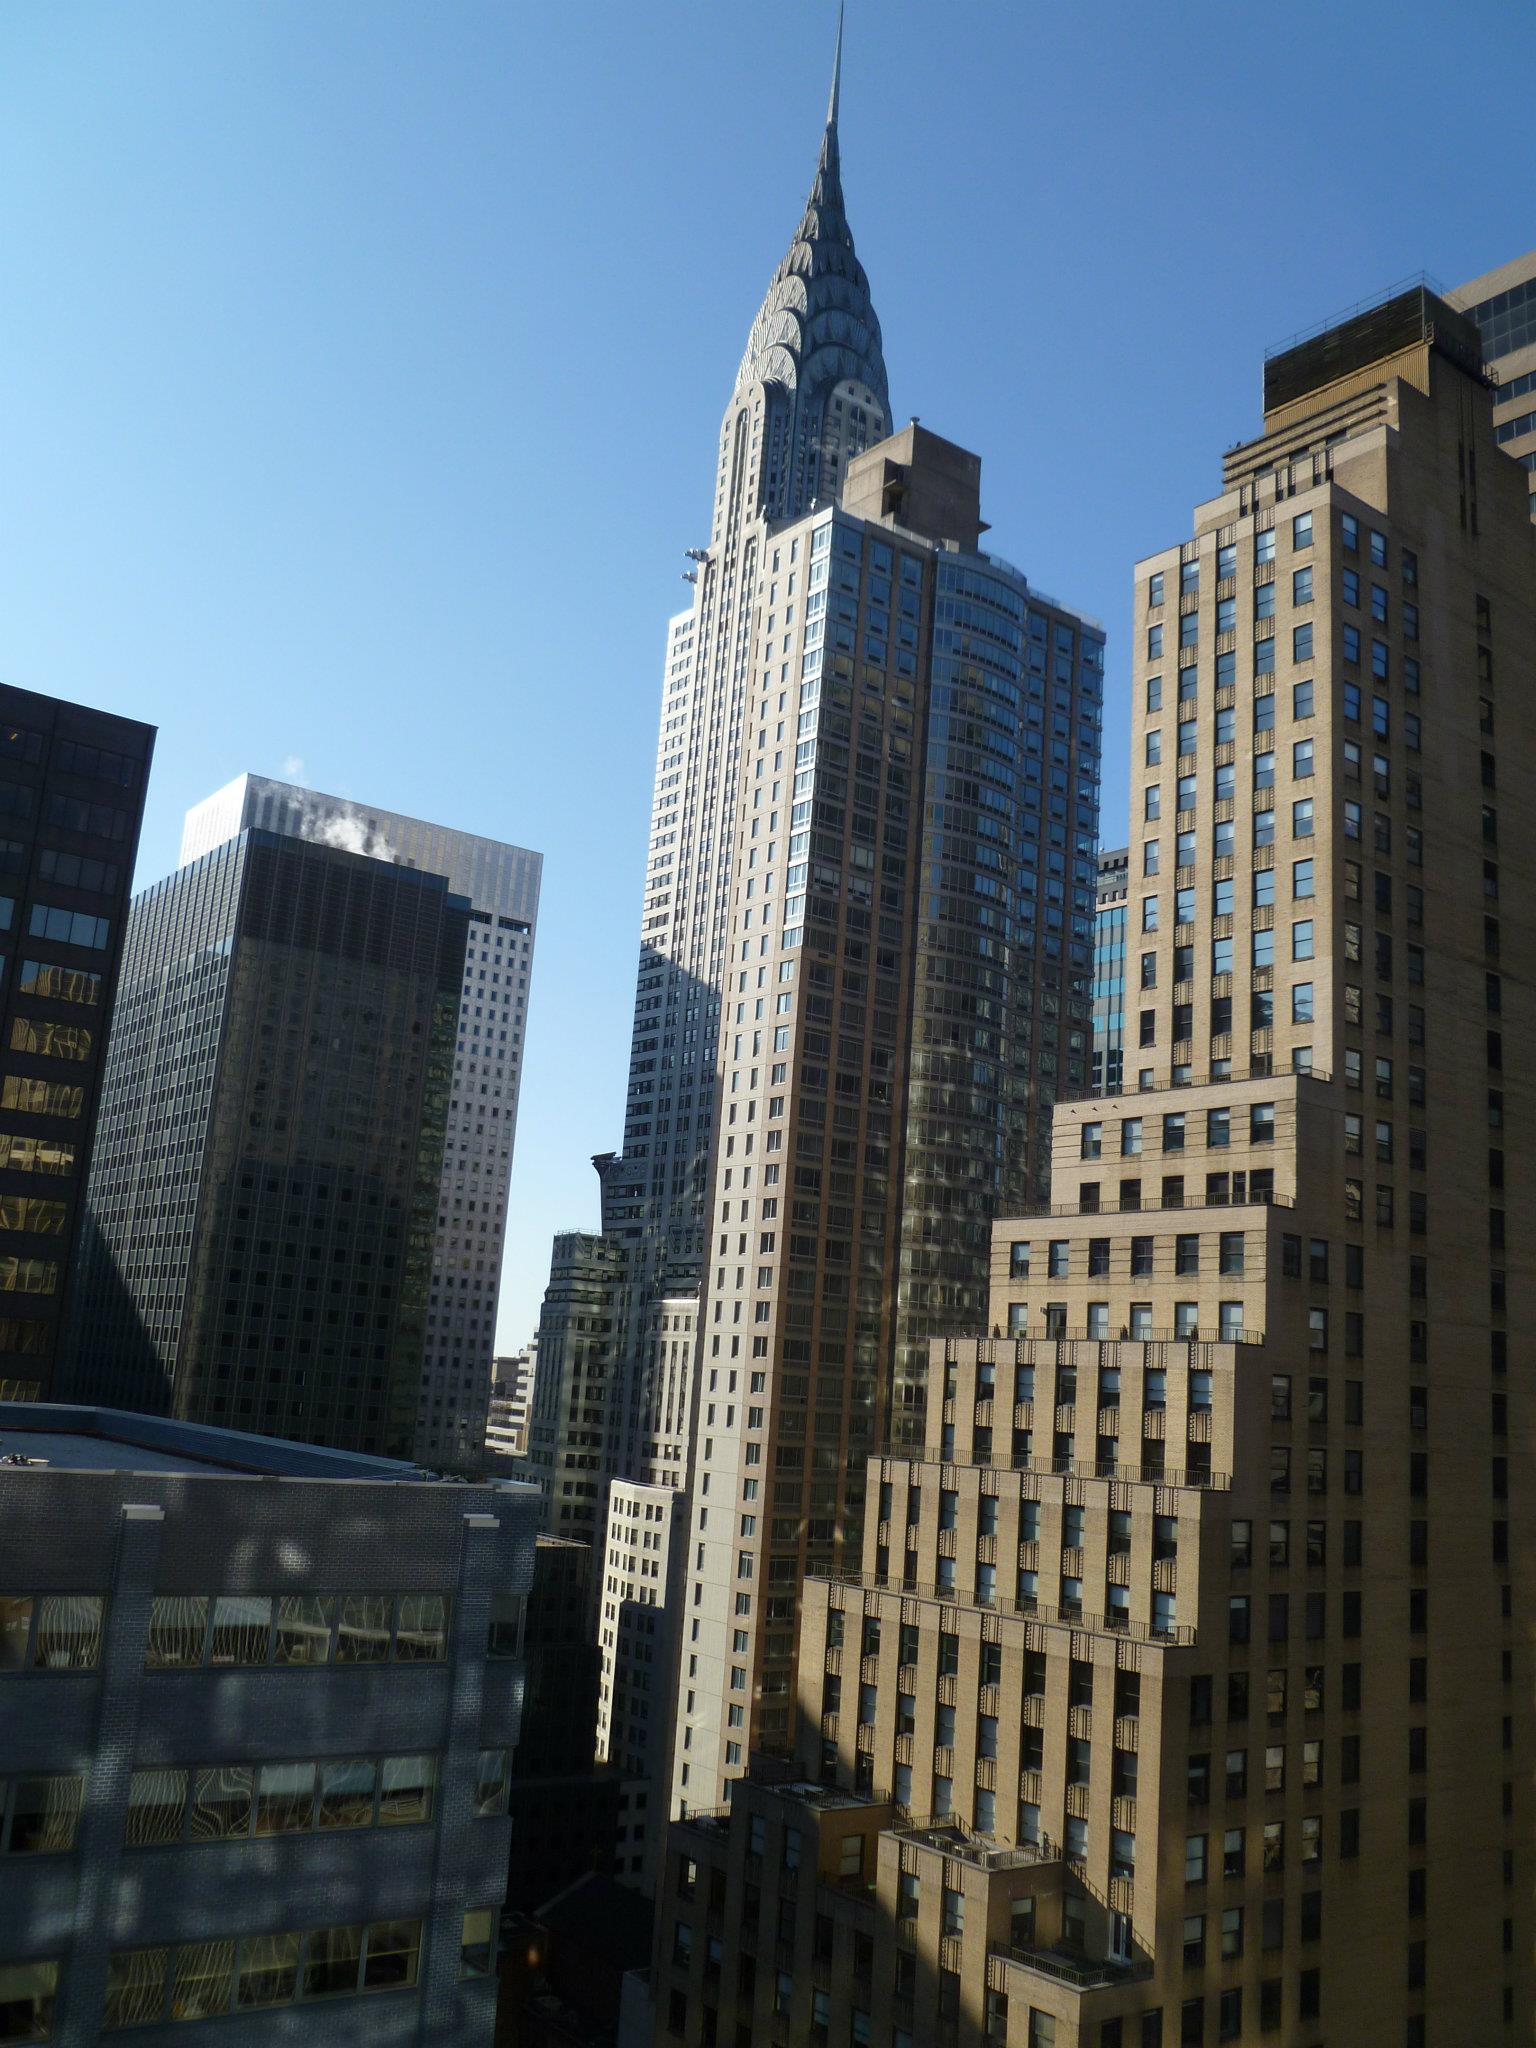 Chrysler Building view during the day from hotel room